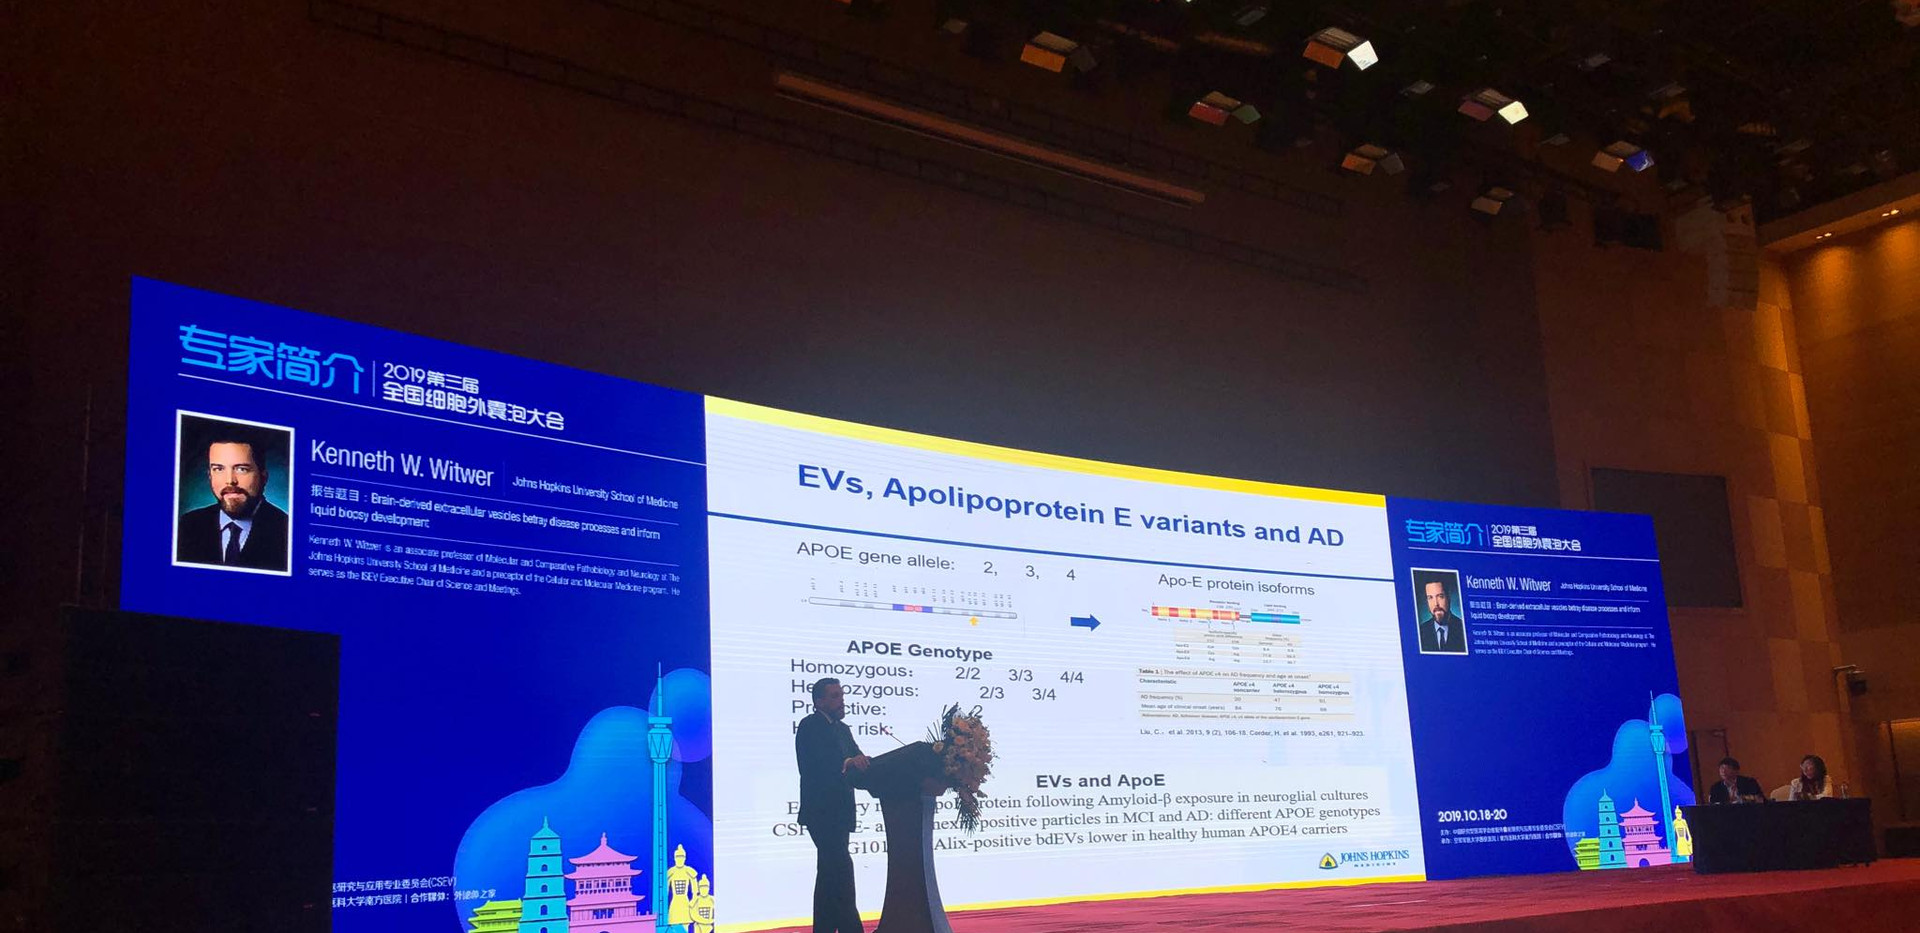 Dr Witwer had the tremendous honor to give a keynote at the third annual meeting of the Chinese Society for Extracellular Vesicles in Xi'an